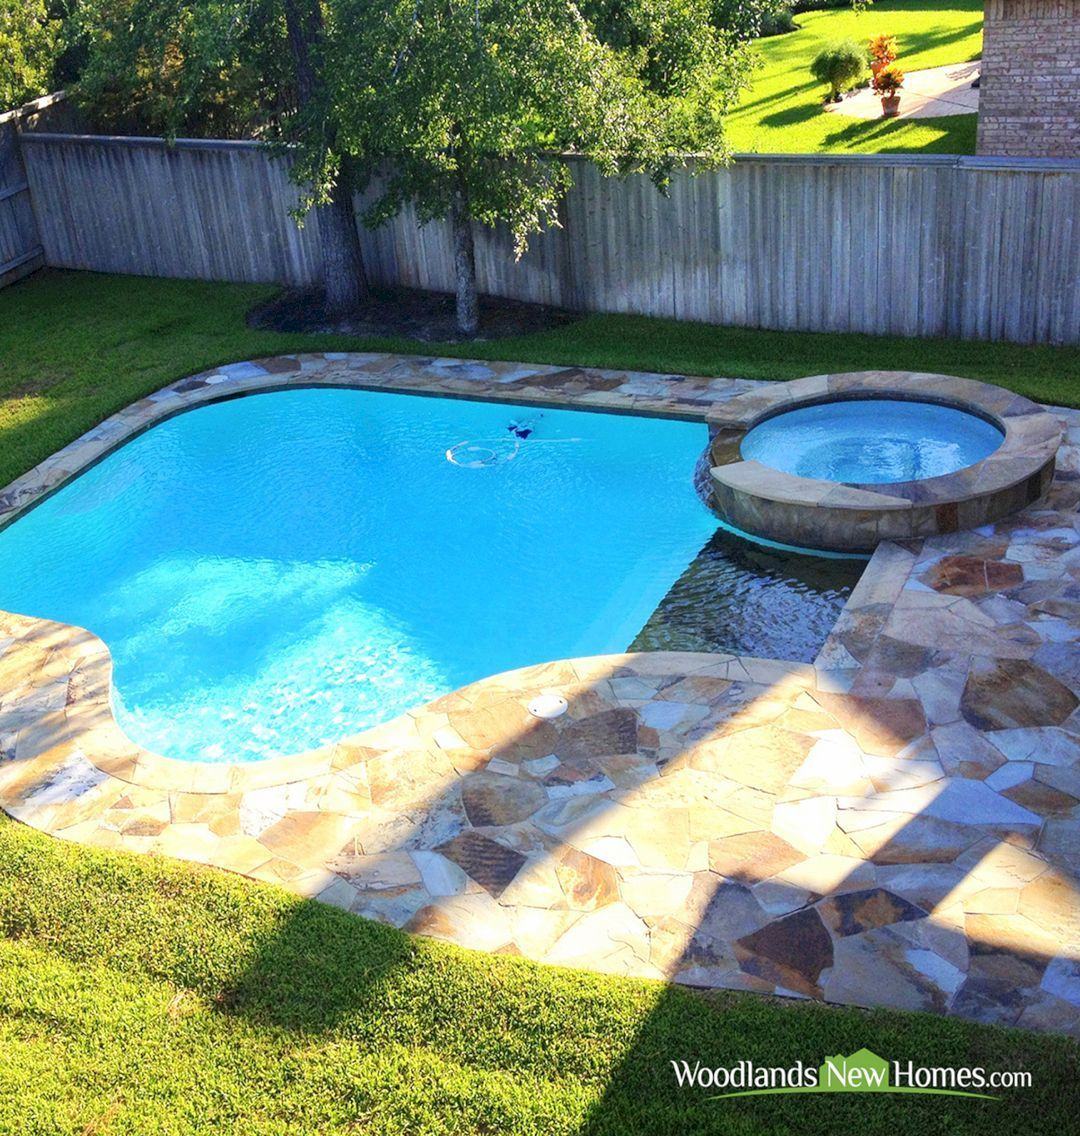 Coolest Small Pool Ideas With 9 Basic Preparation Tips Small Pools Backyard Small Pool Design Small Pools